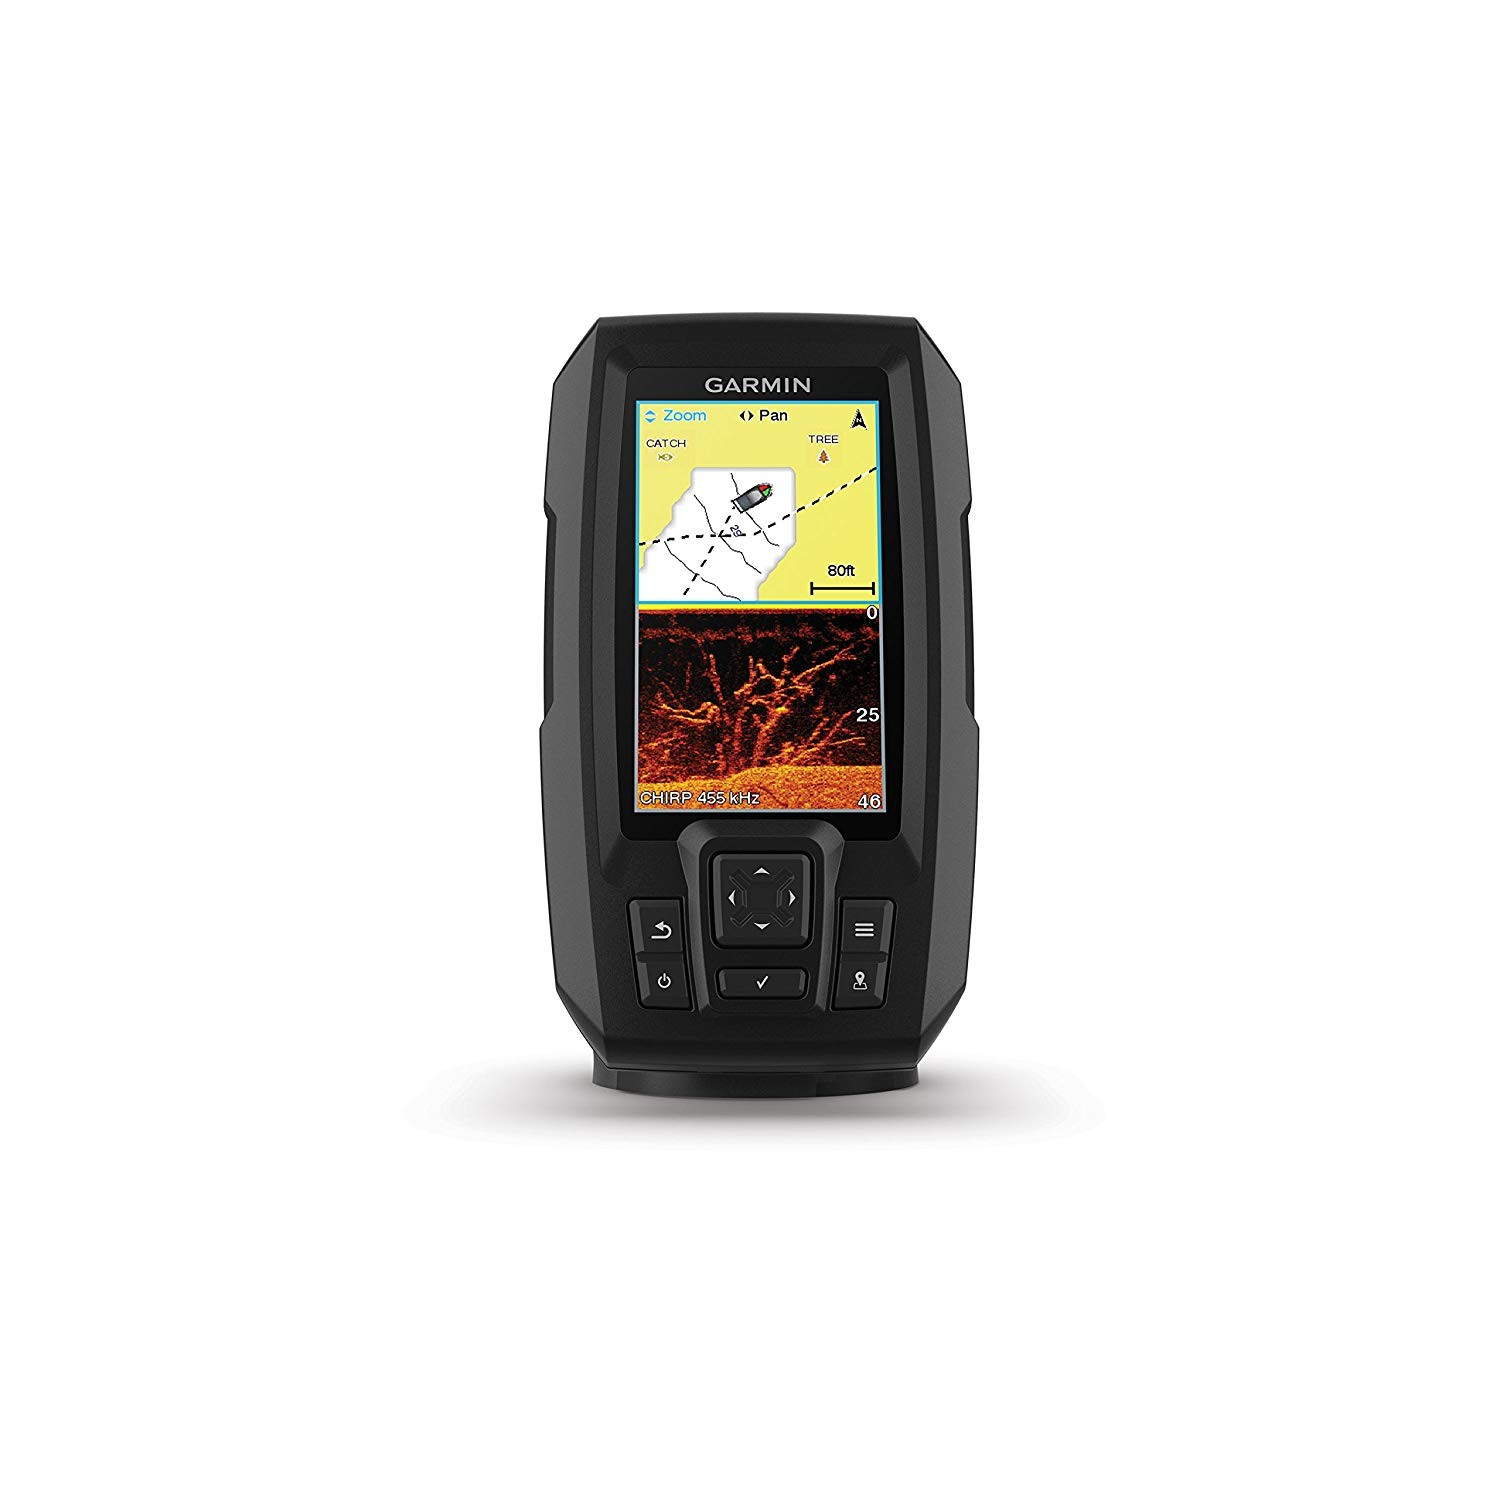 Garmin Striker Plus 4cv Wiring Diagram 6 Best Kayak Fish Finders Reviewed In Detail May 2020 Of Garmin Striker Plus 4cv Wiring Diagram